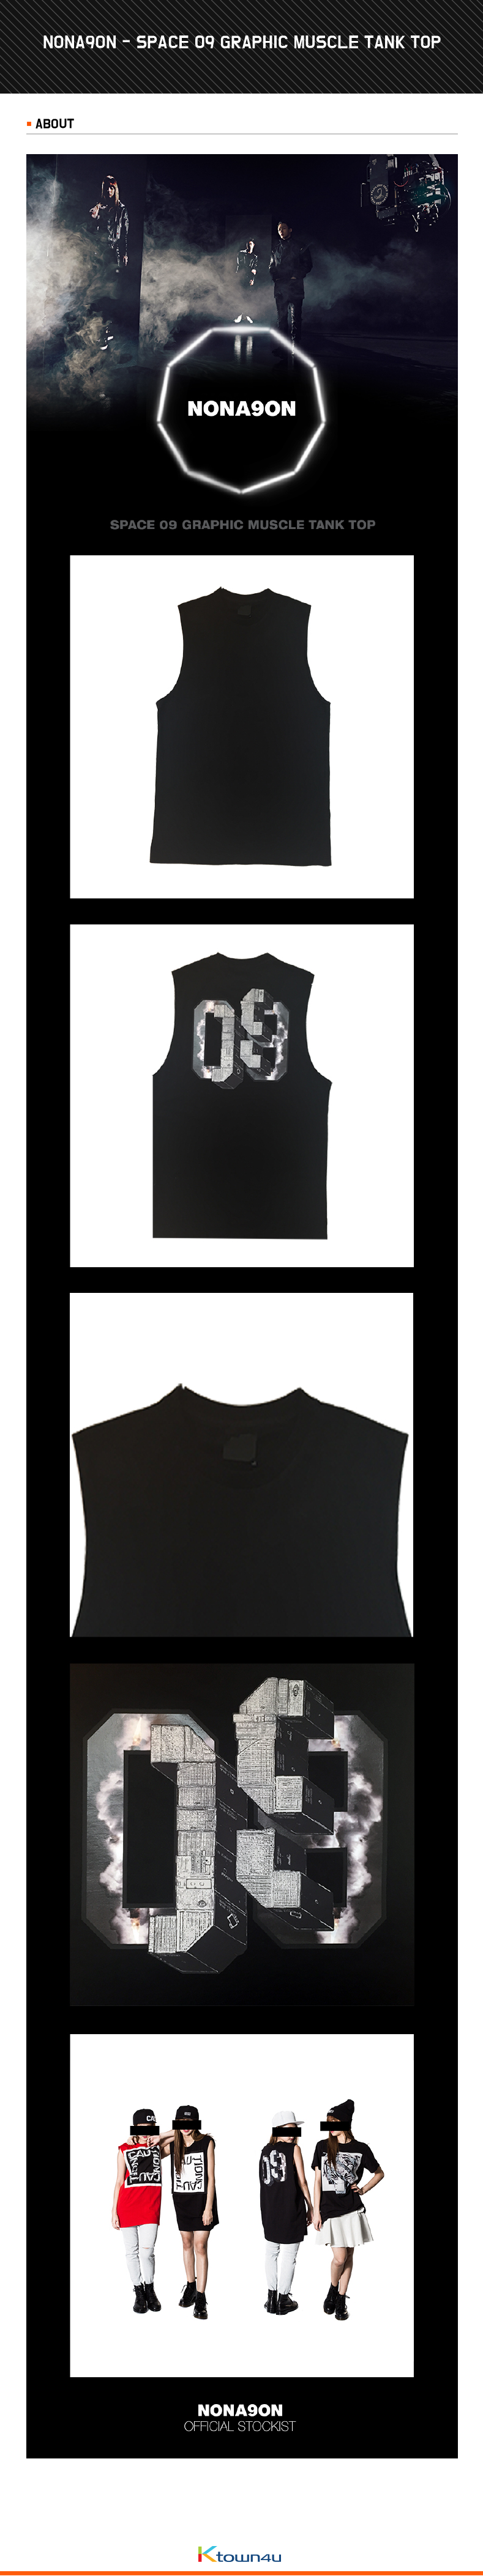 NONA9ON - [WOMEN'S] SPACE 09 GRAPHIC MUSCLE TANK TOP